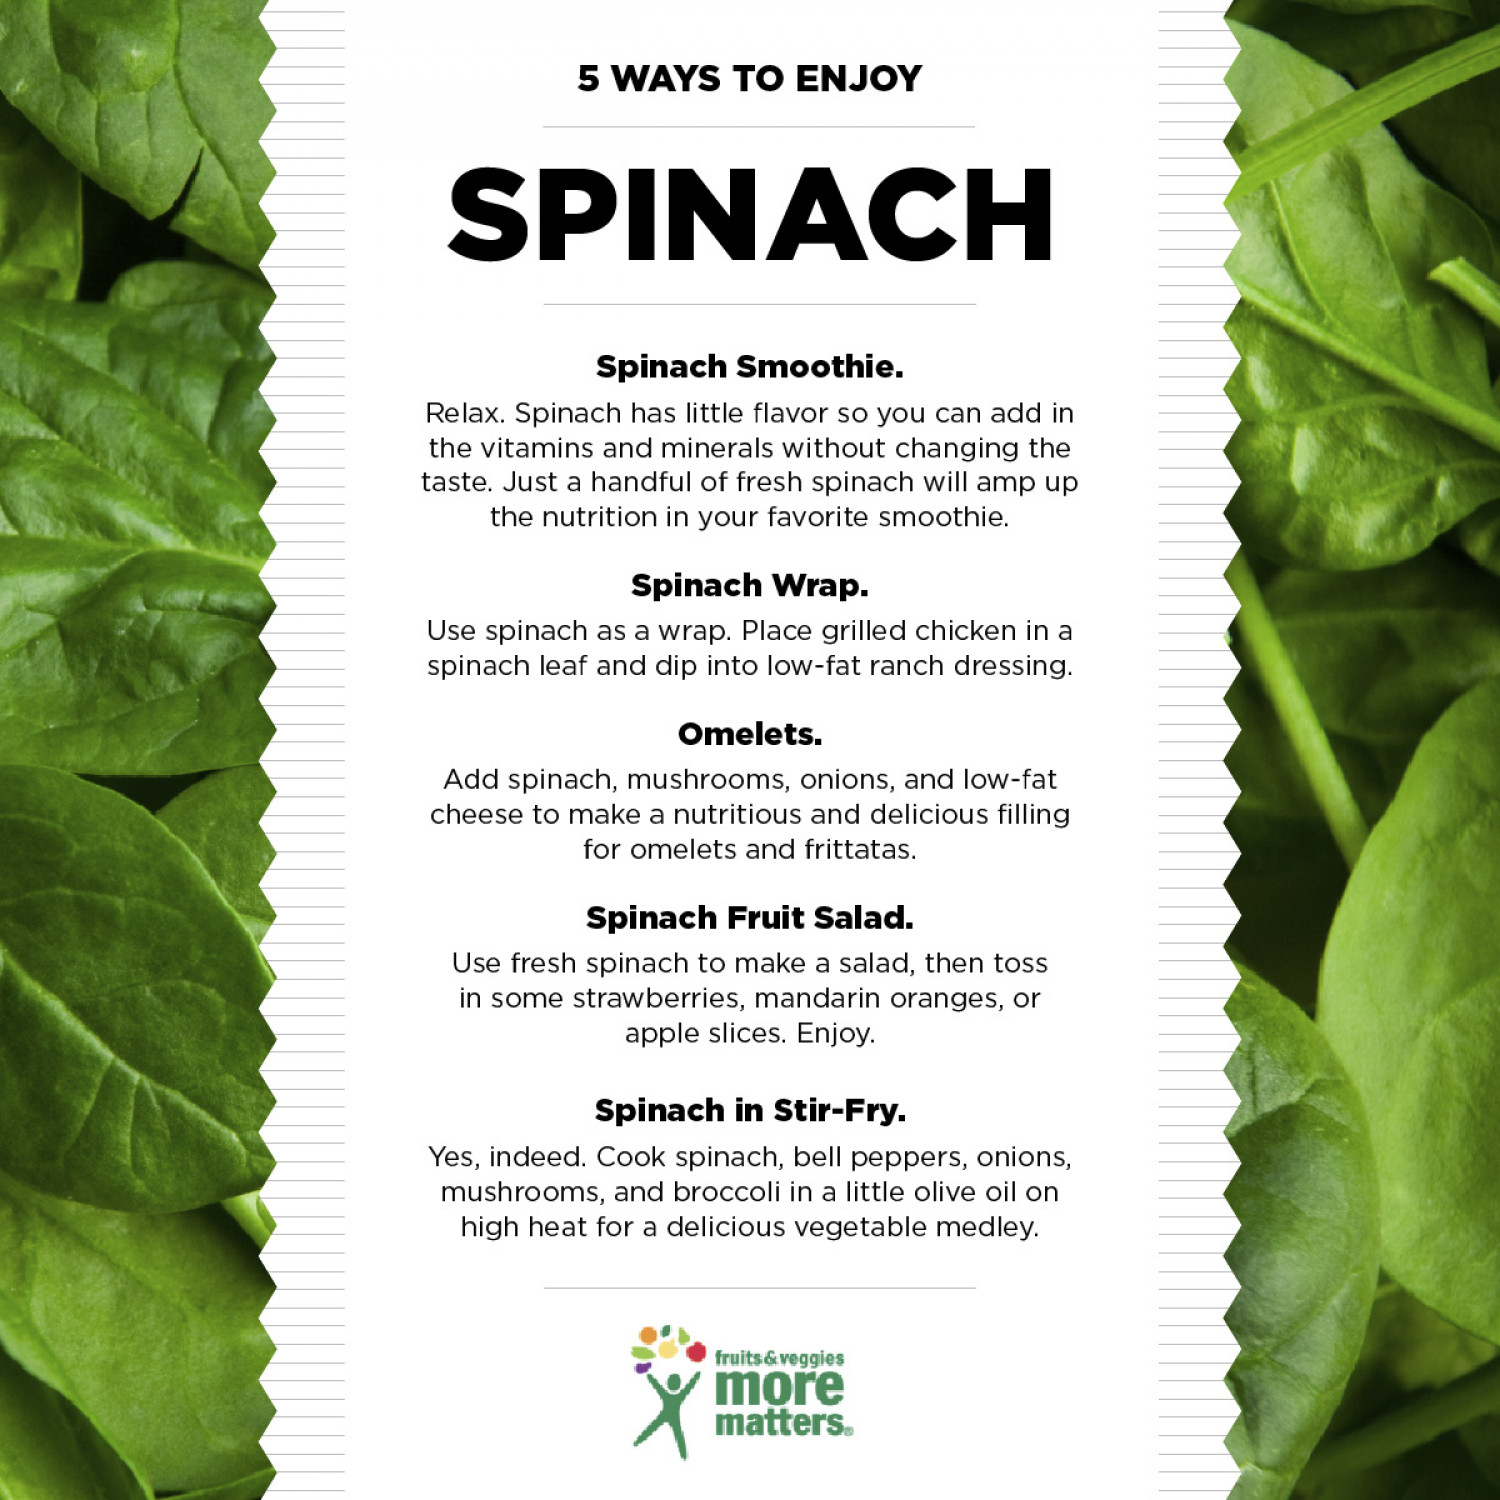 5 Ways to Enjoy Spinach Infographic